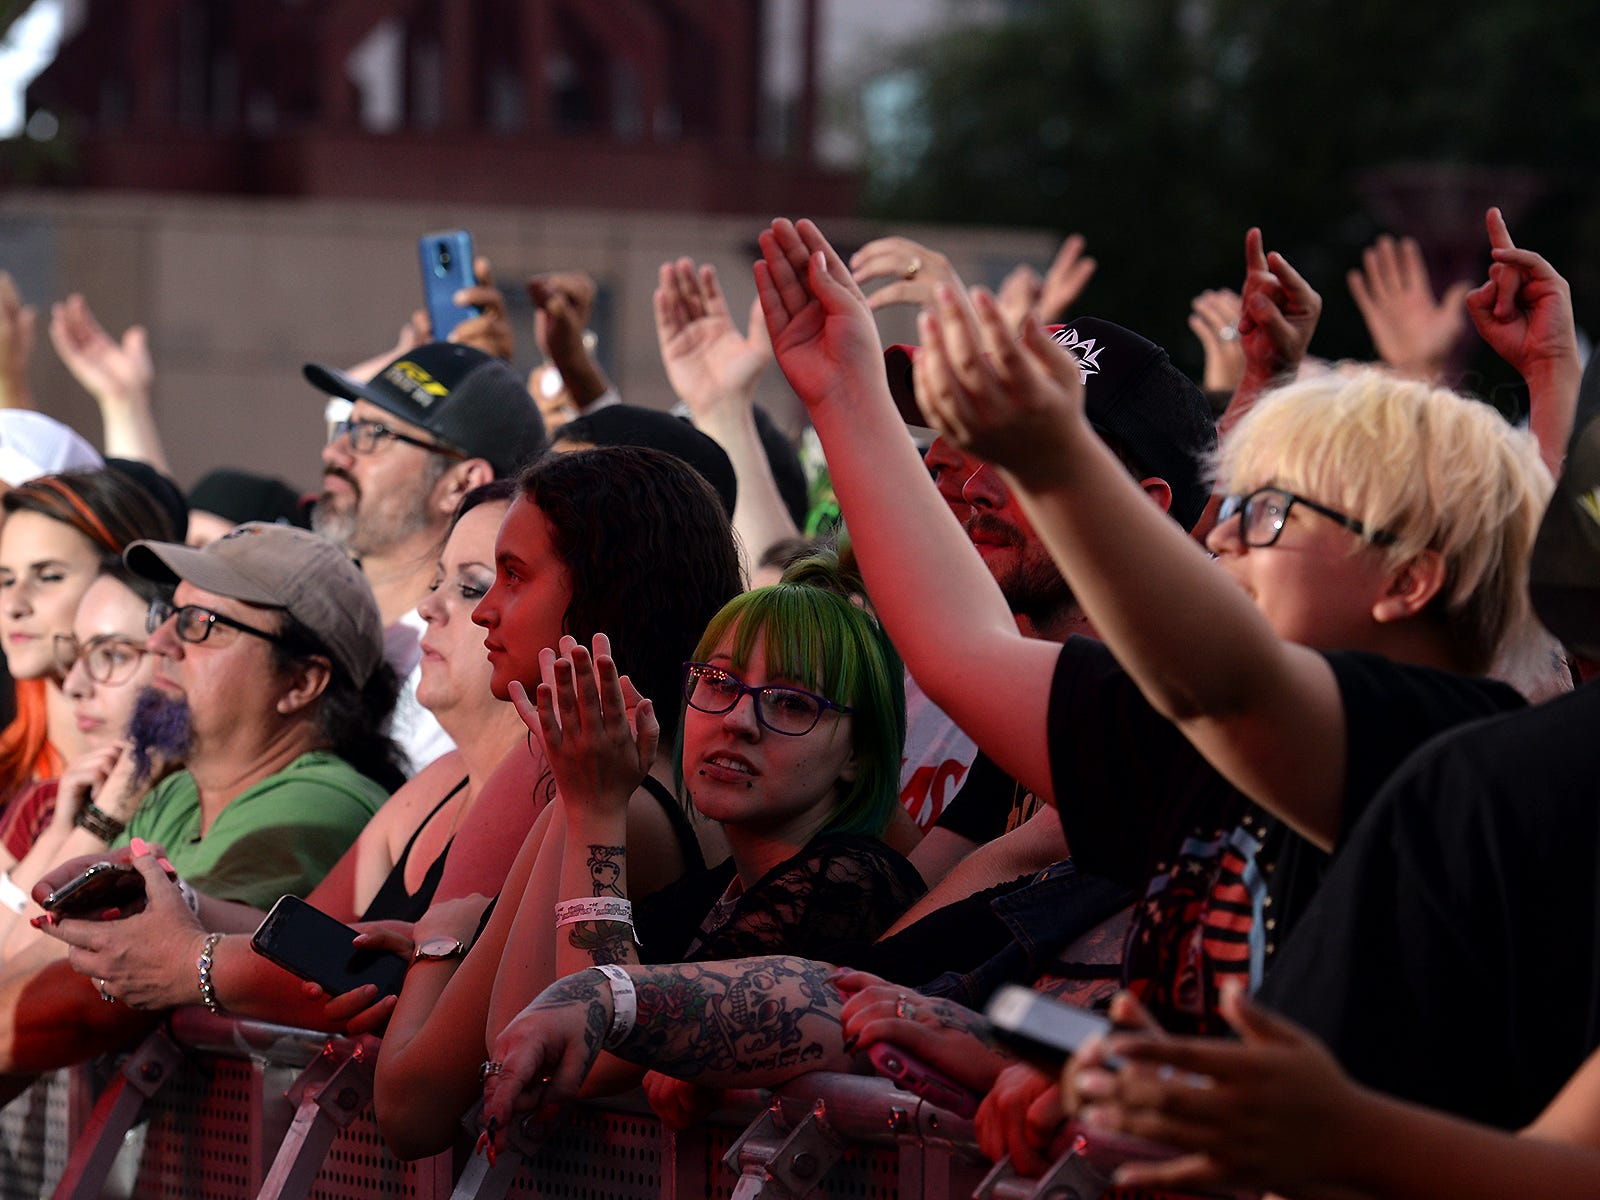 Fans at Bash Festival in Phoenix, Ariz., on May 11, 2019.